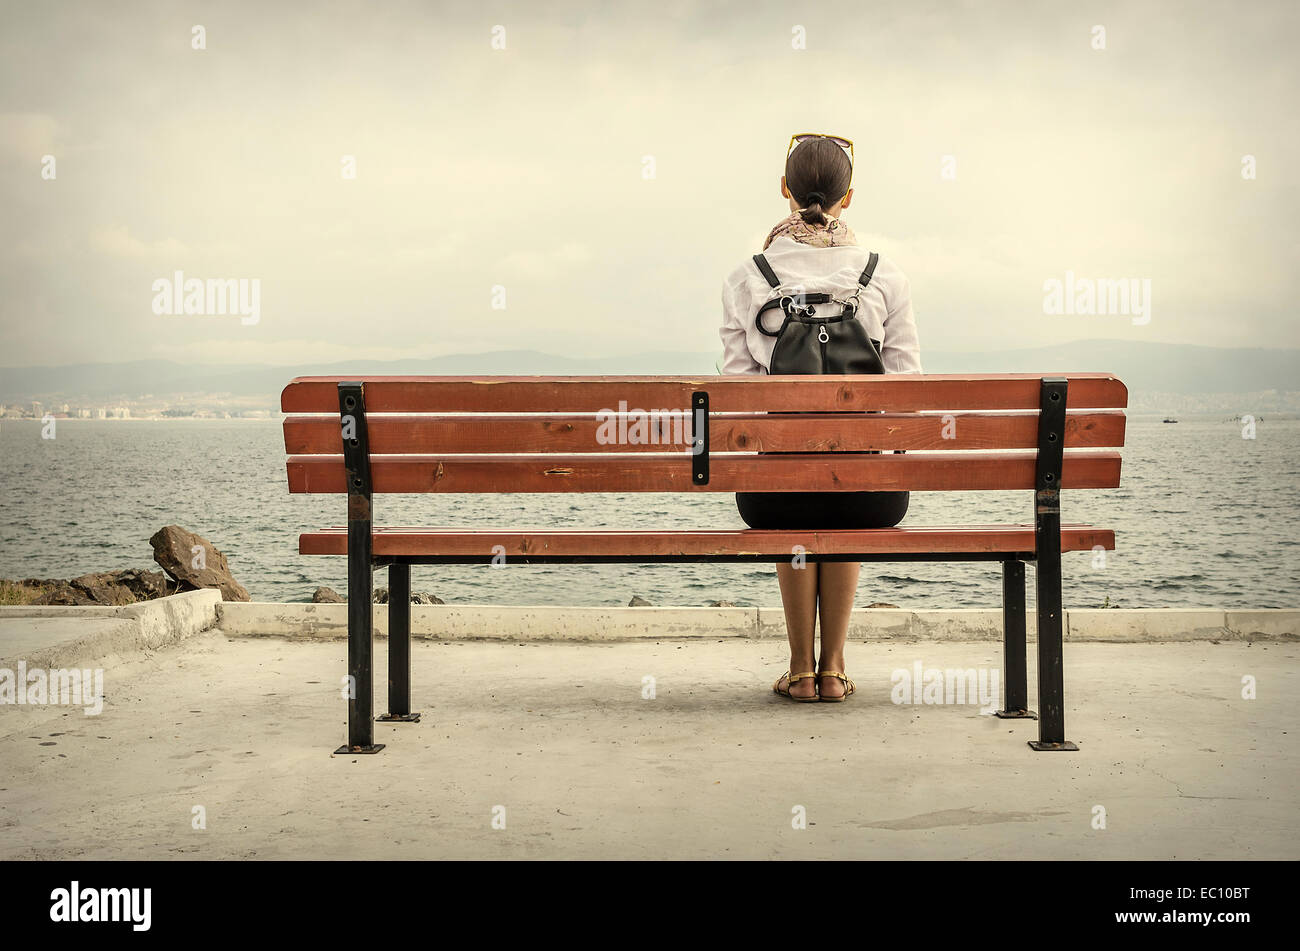 Lonely Woman Sitting On A Bench By The Sea Stock Photo Royalty Free Image 76239628 Alamy